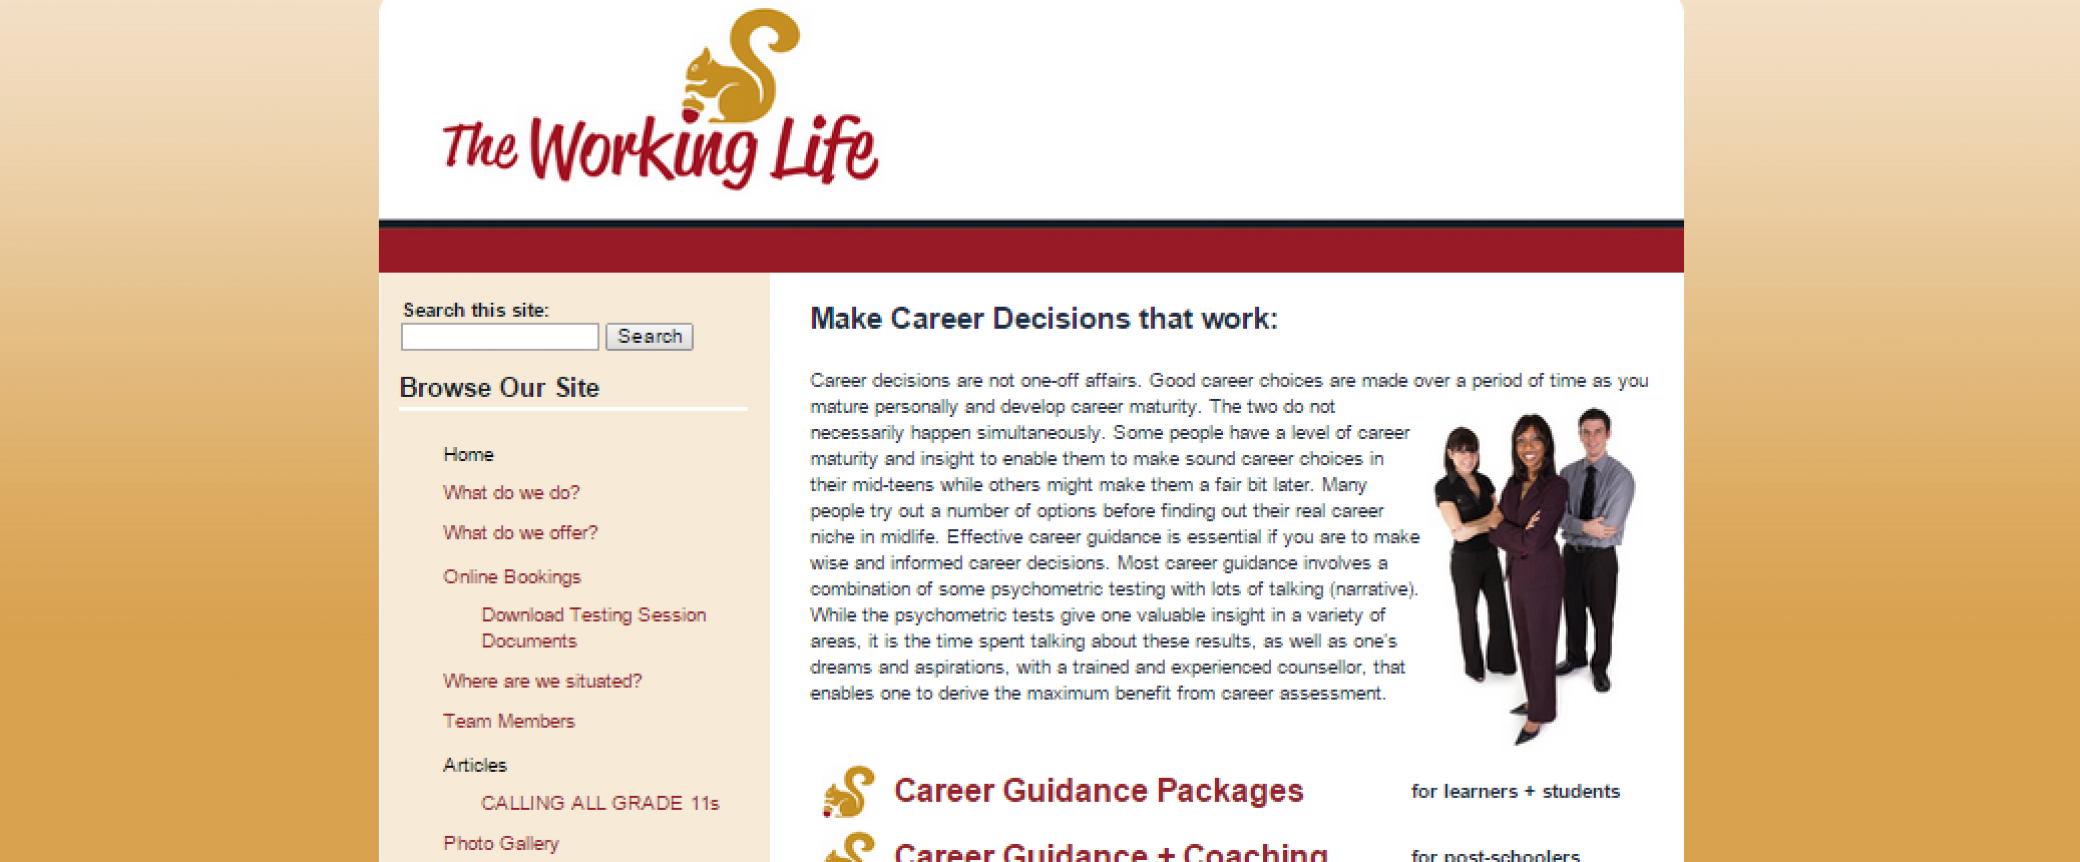 Working Life Career Consultancy with Annette Miller Homepage